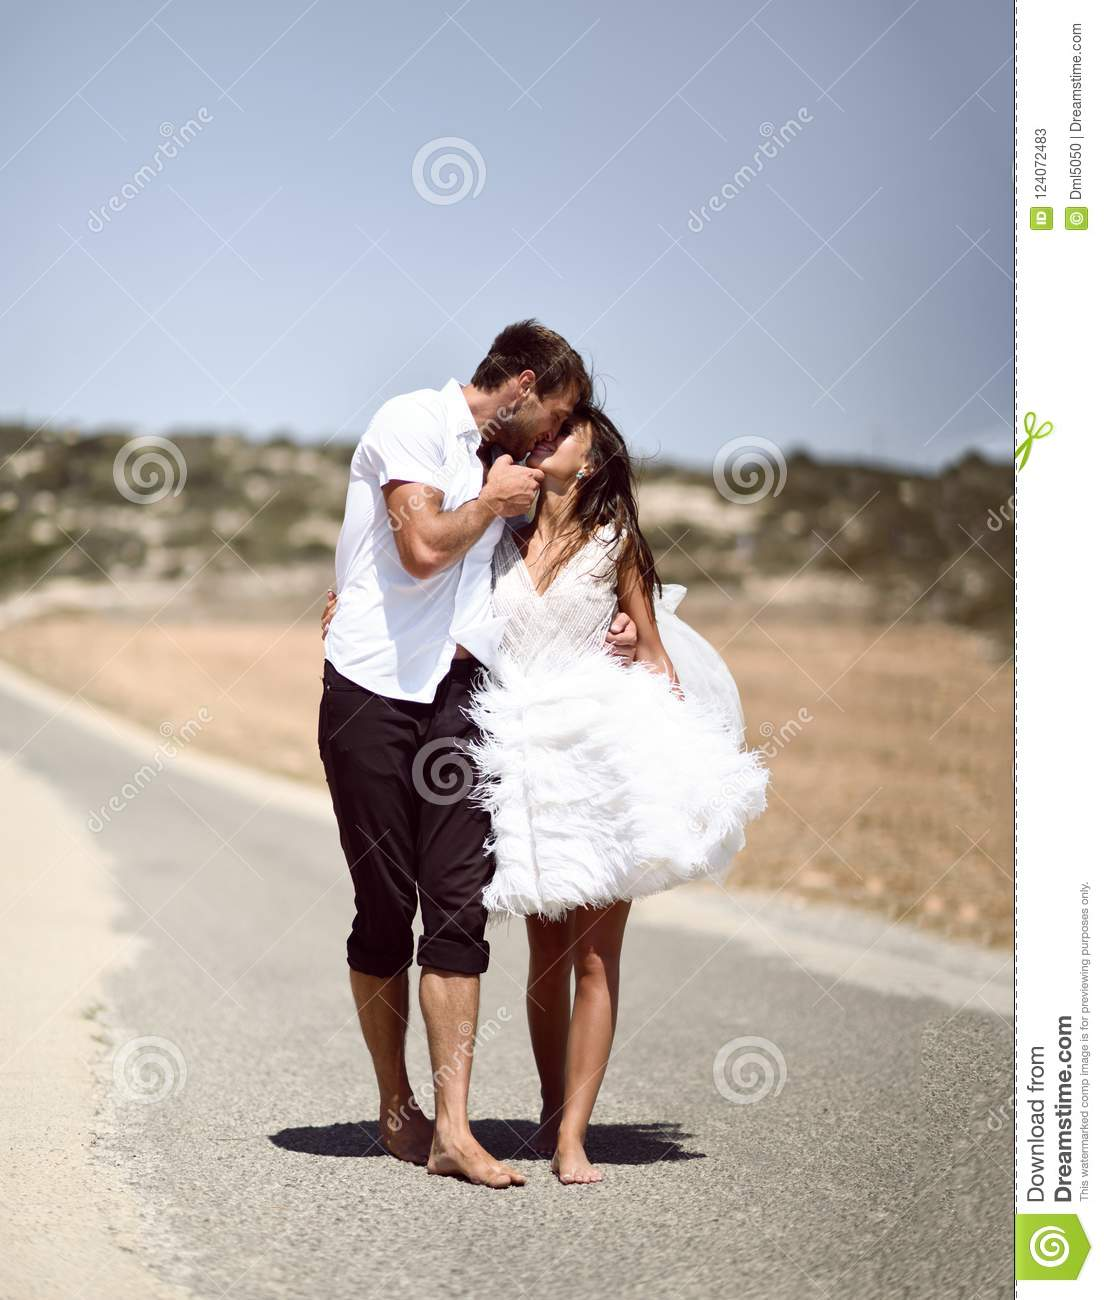 Couple Kissing Hugging Walking On A Road Together Hold Hands Romantic Vacation Honeymoon Love Story Stock Image Image Of Dating Ocean 124072483